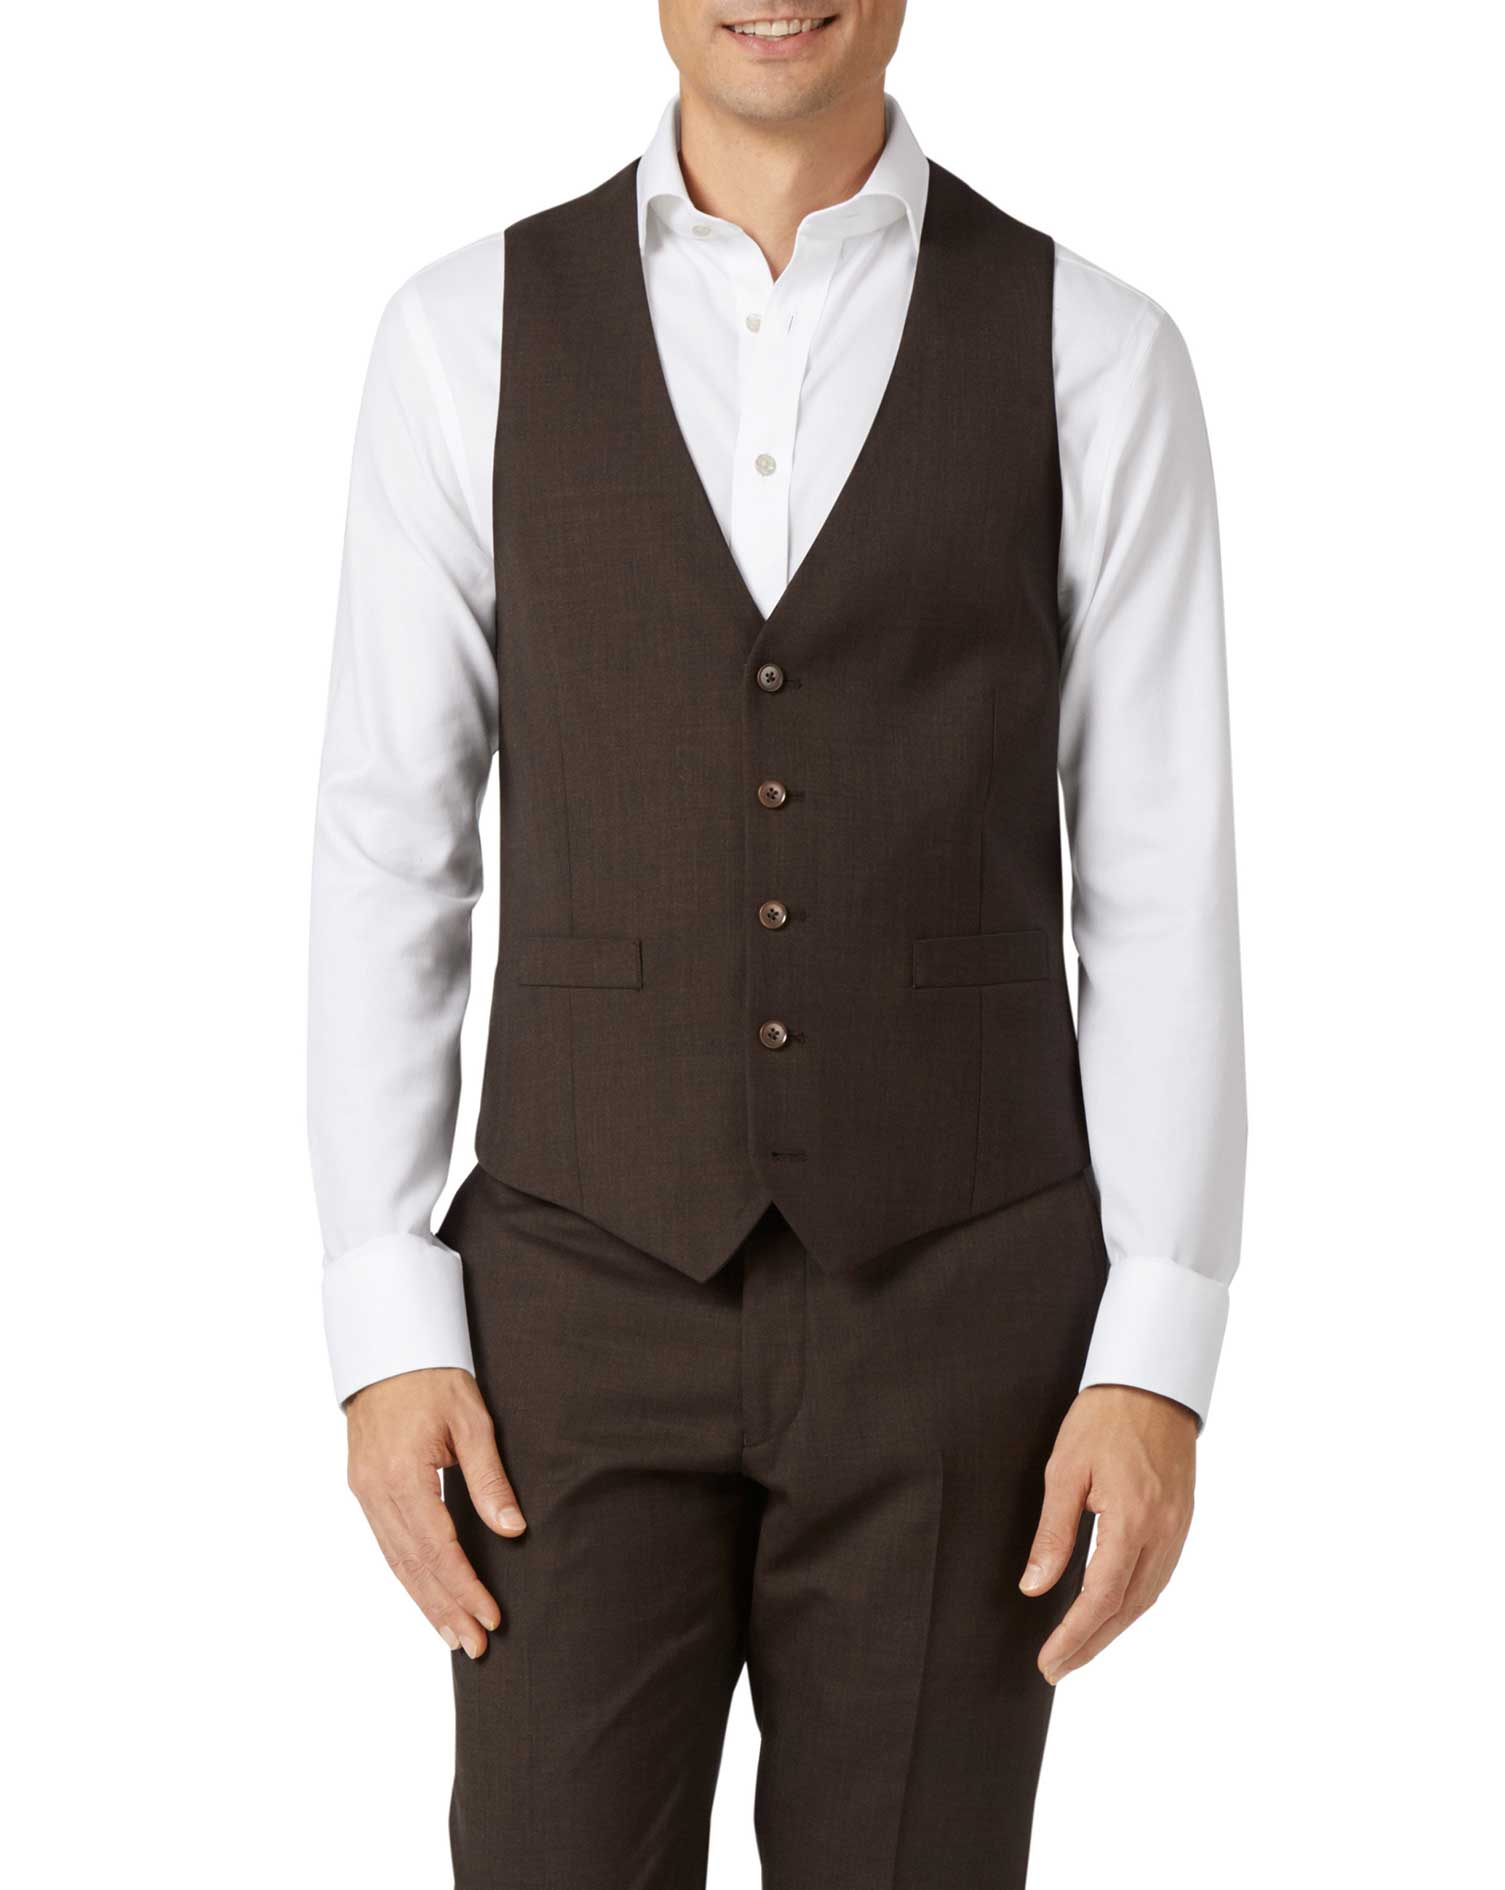 Chocolate Adjustable Fit Sharkskin Travel Suit Wool Waistcoat Size w36 by Charles Tyrwhitt